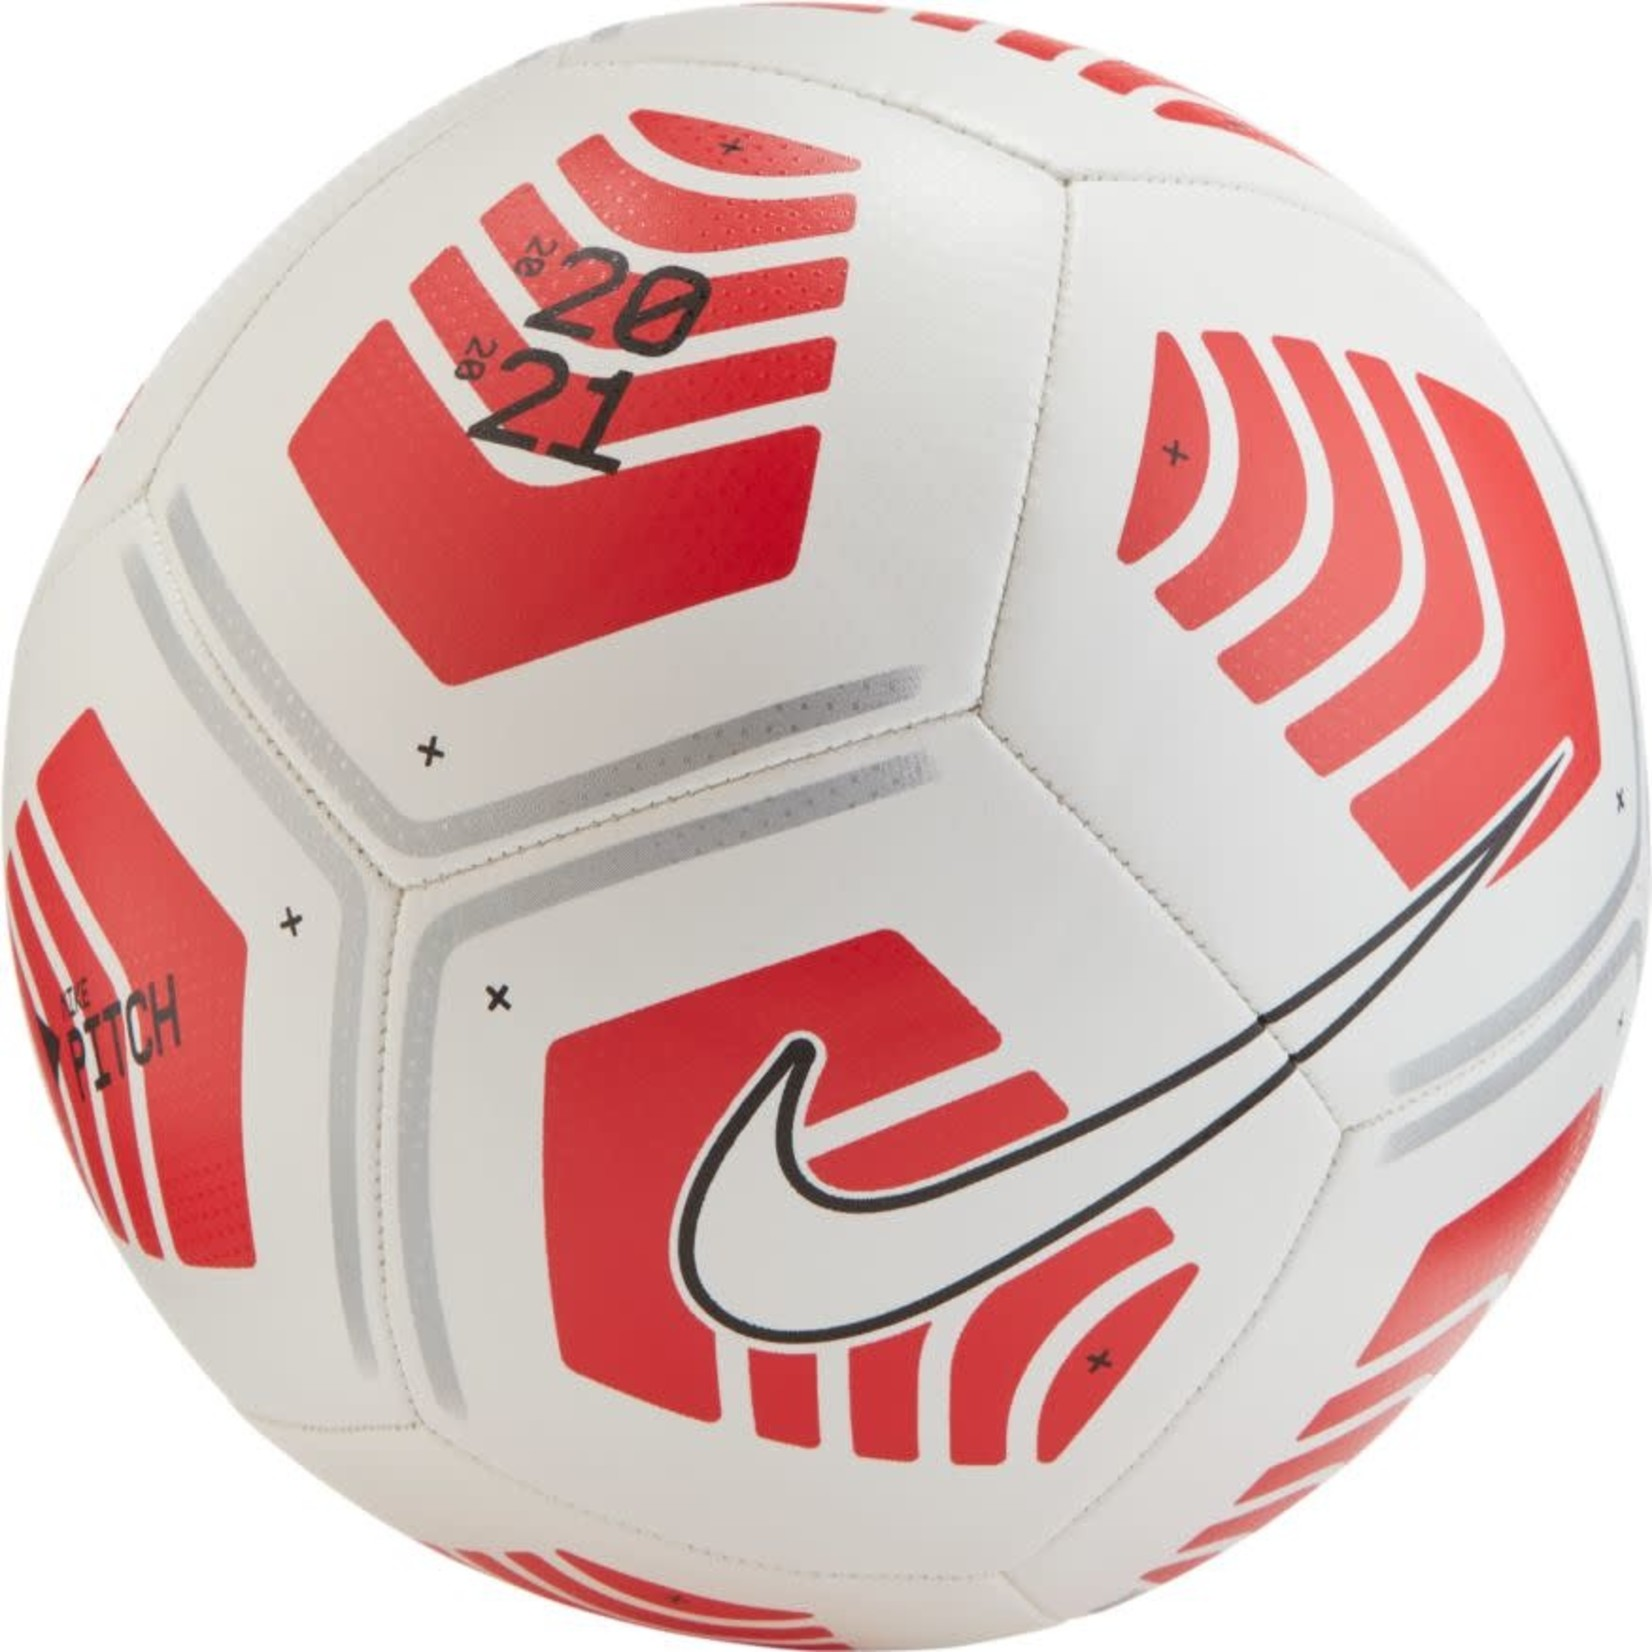 NIKE PITCH BALL 20/21 (WHITE/RED)